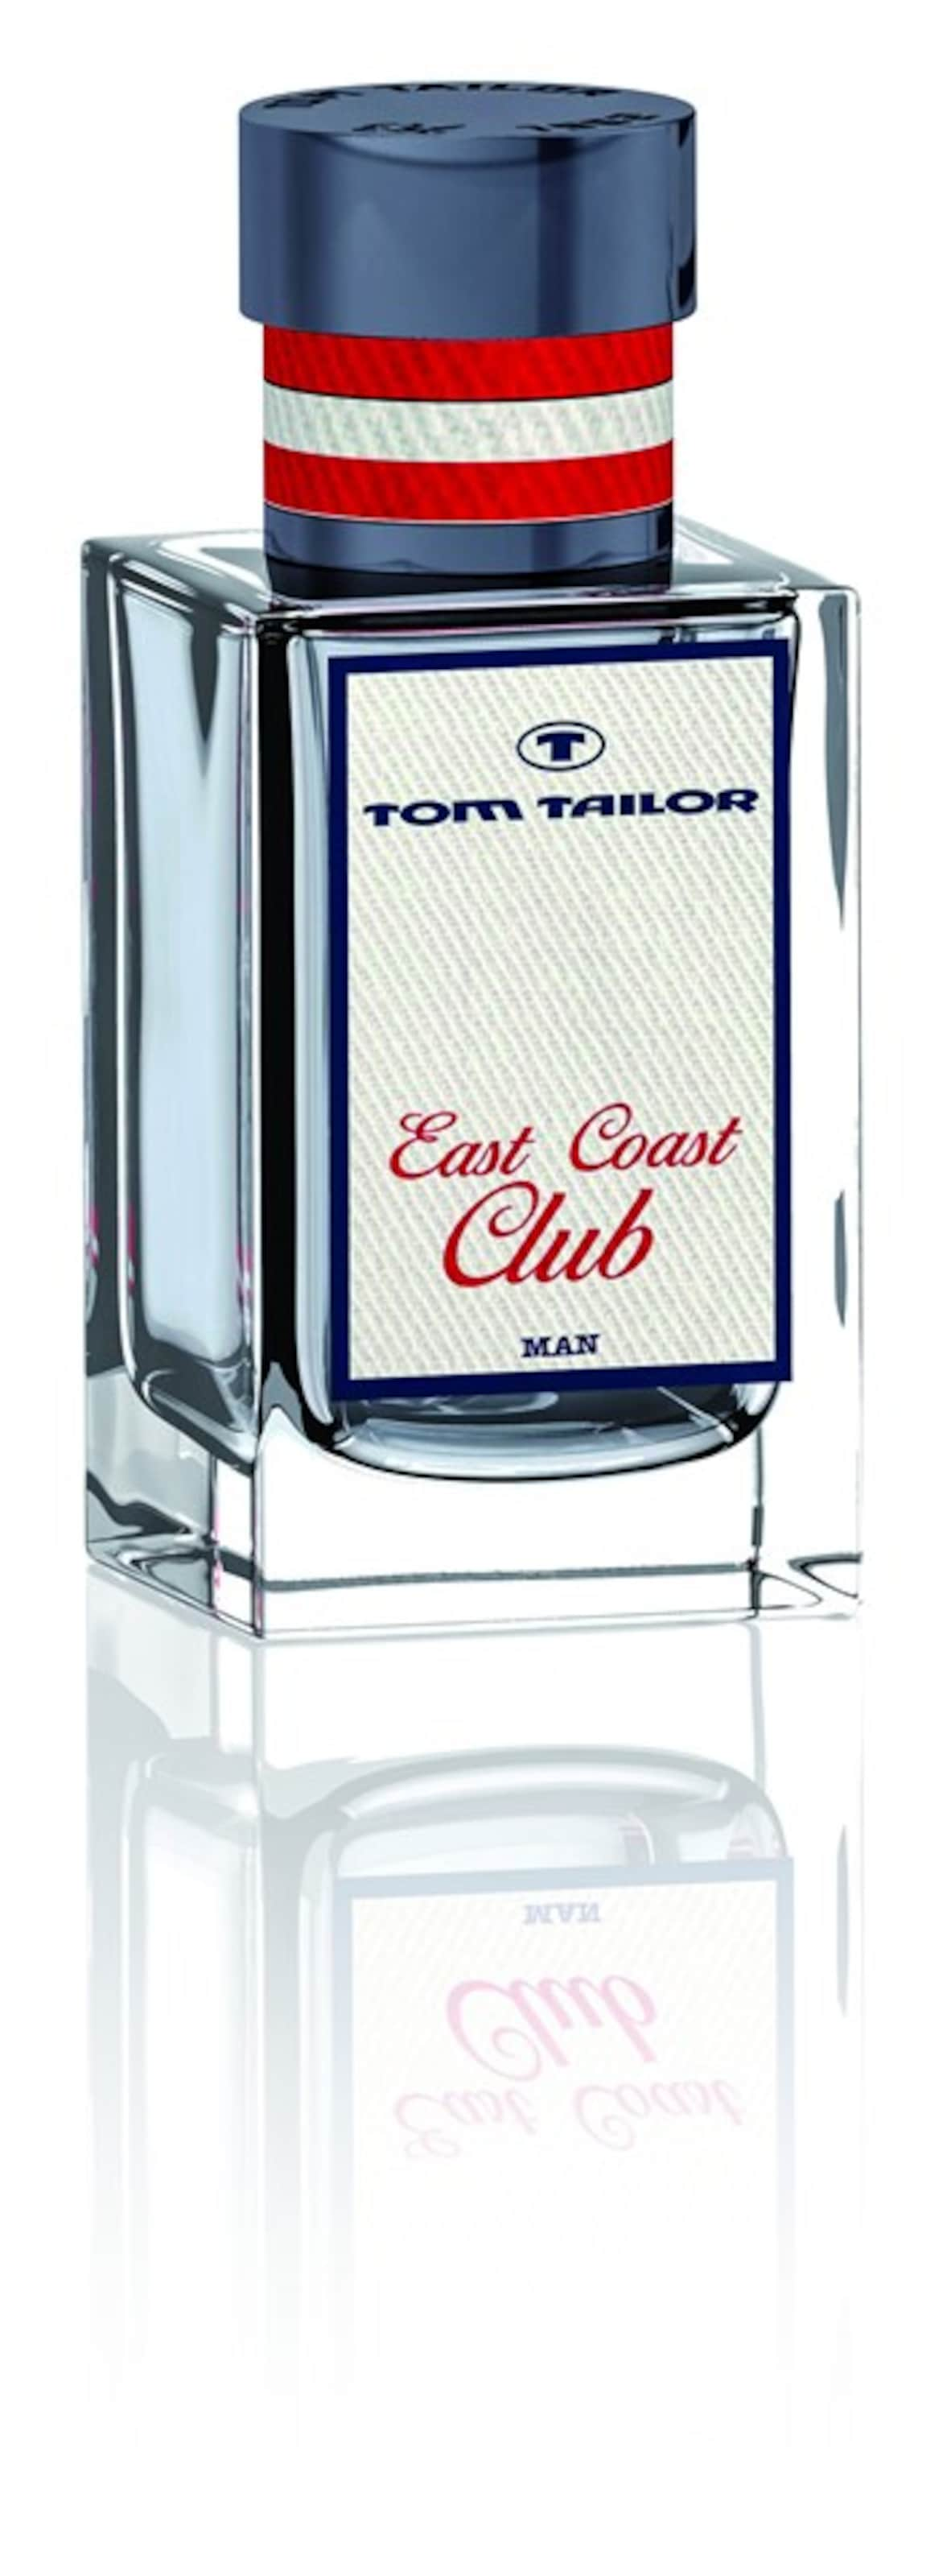 Club Man'Eau Coast In Tom 'east Tailor Toilette De BlauRot H2WI9YED